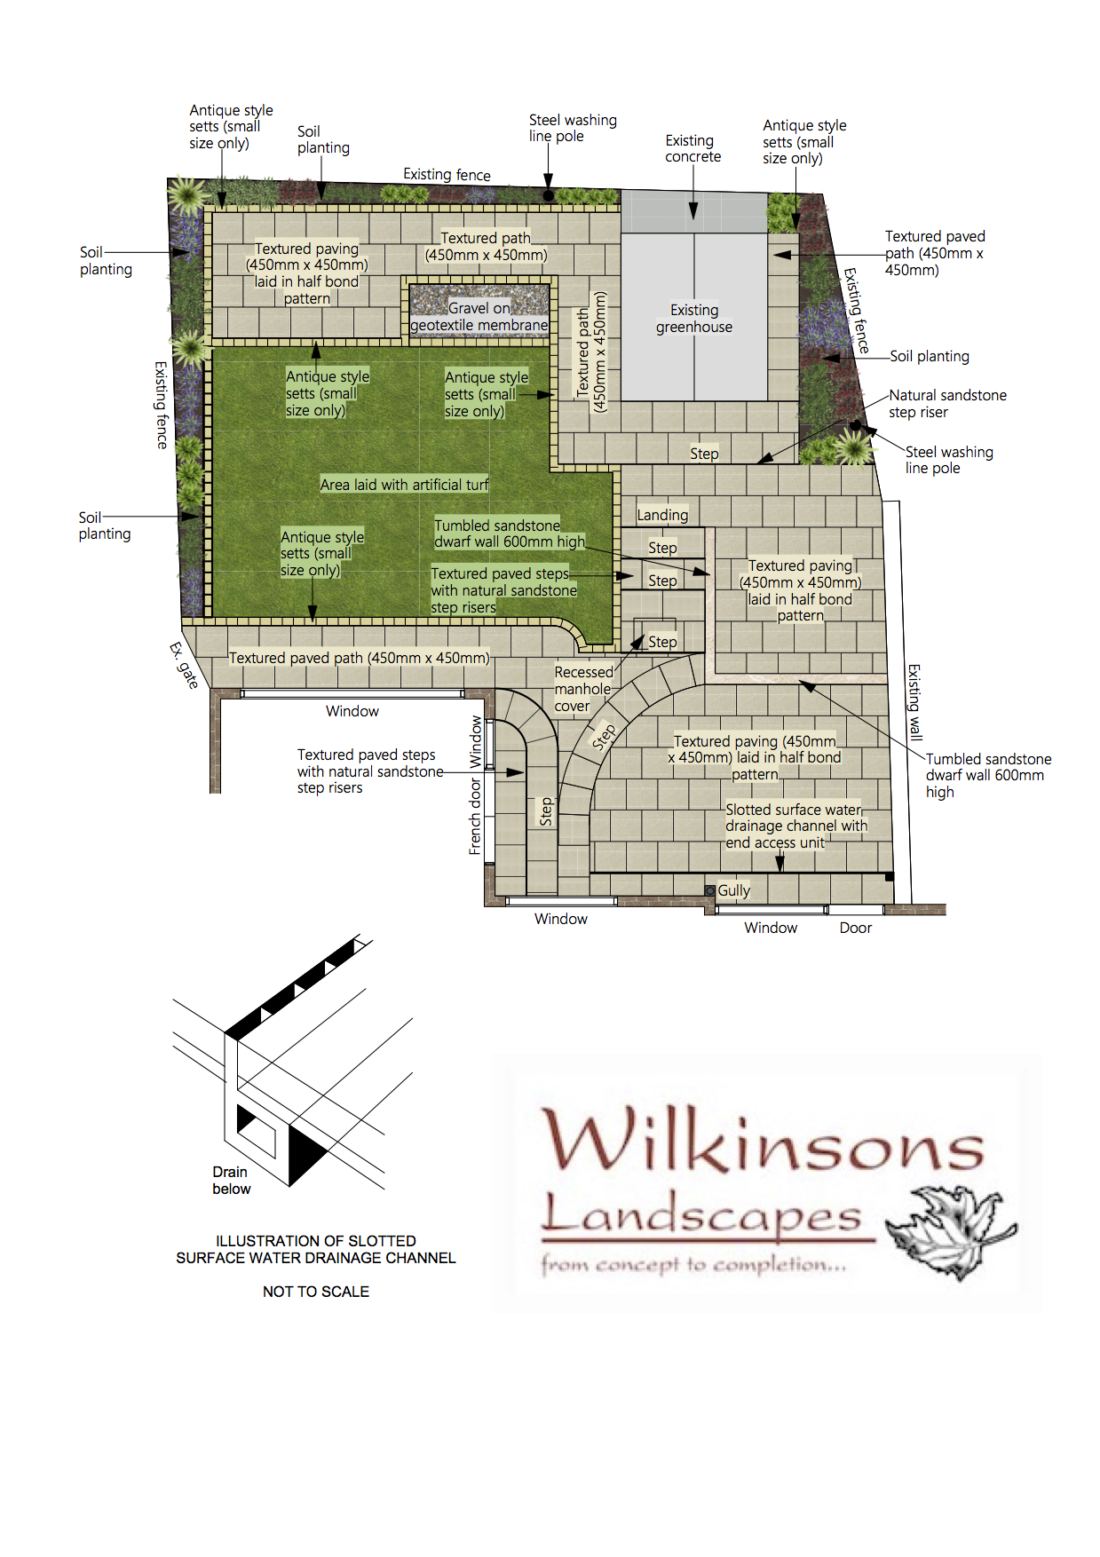 digital plan for textured path, steps and patio area